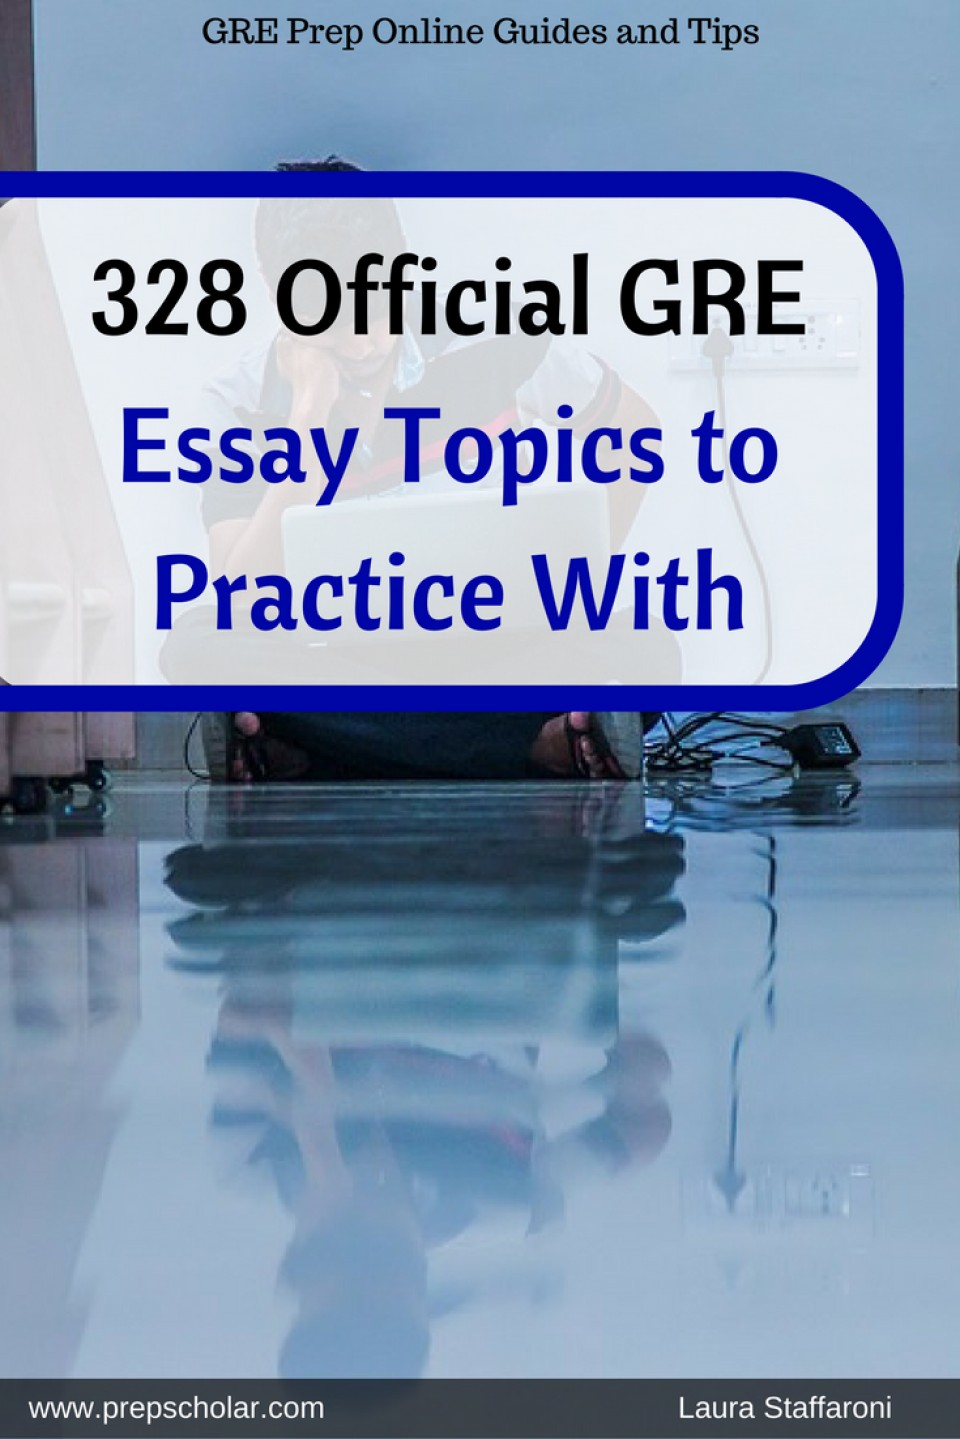 015 Essay Example Remarkable Gre Topics Pdf Analytical Writing Grader Issue Pool Solutions 960